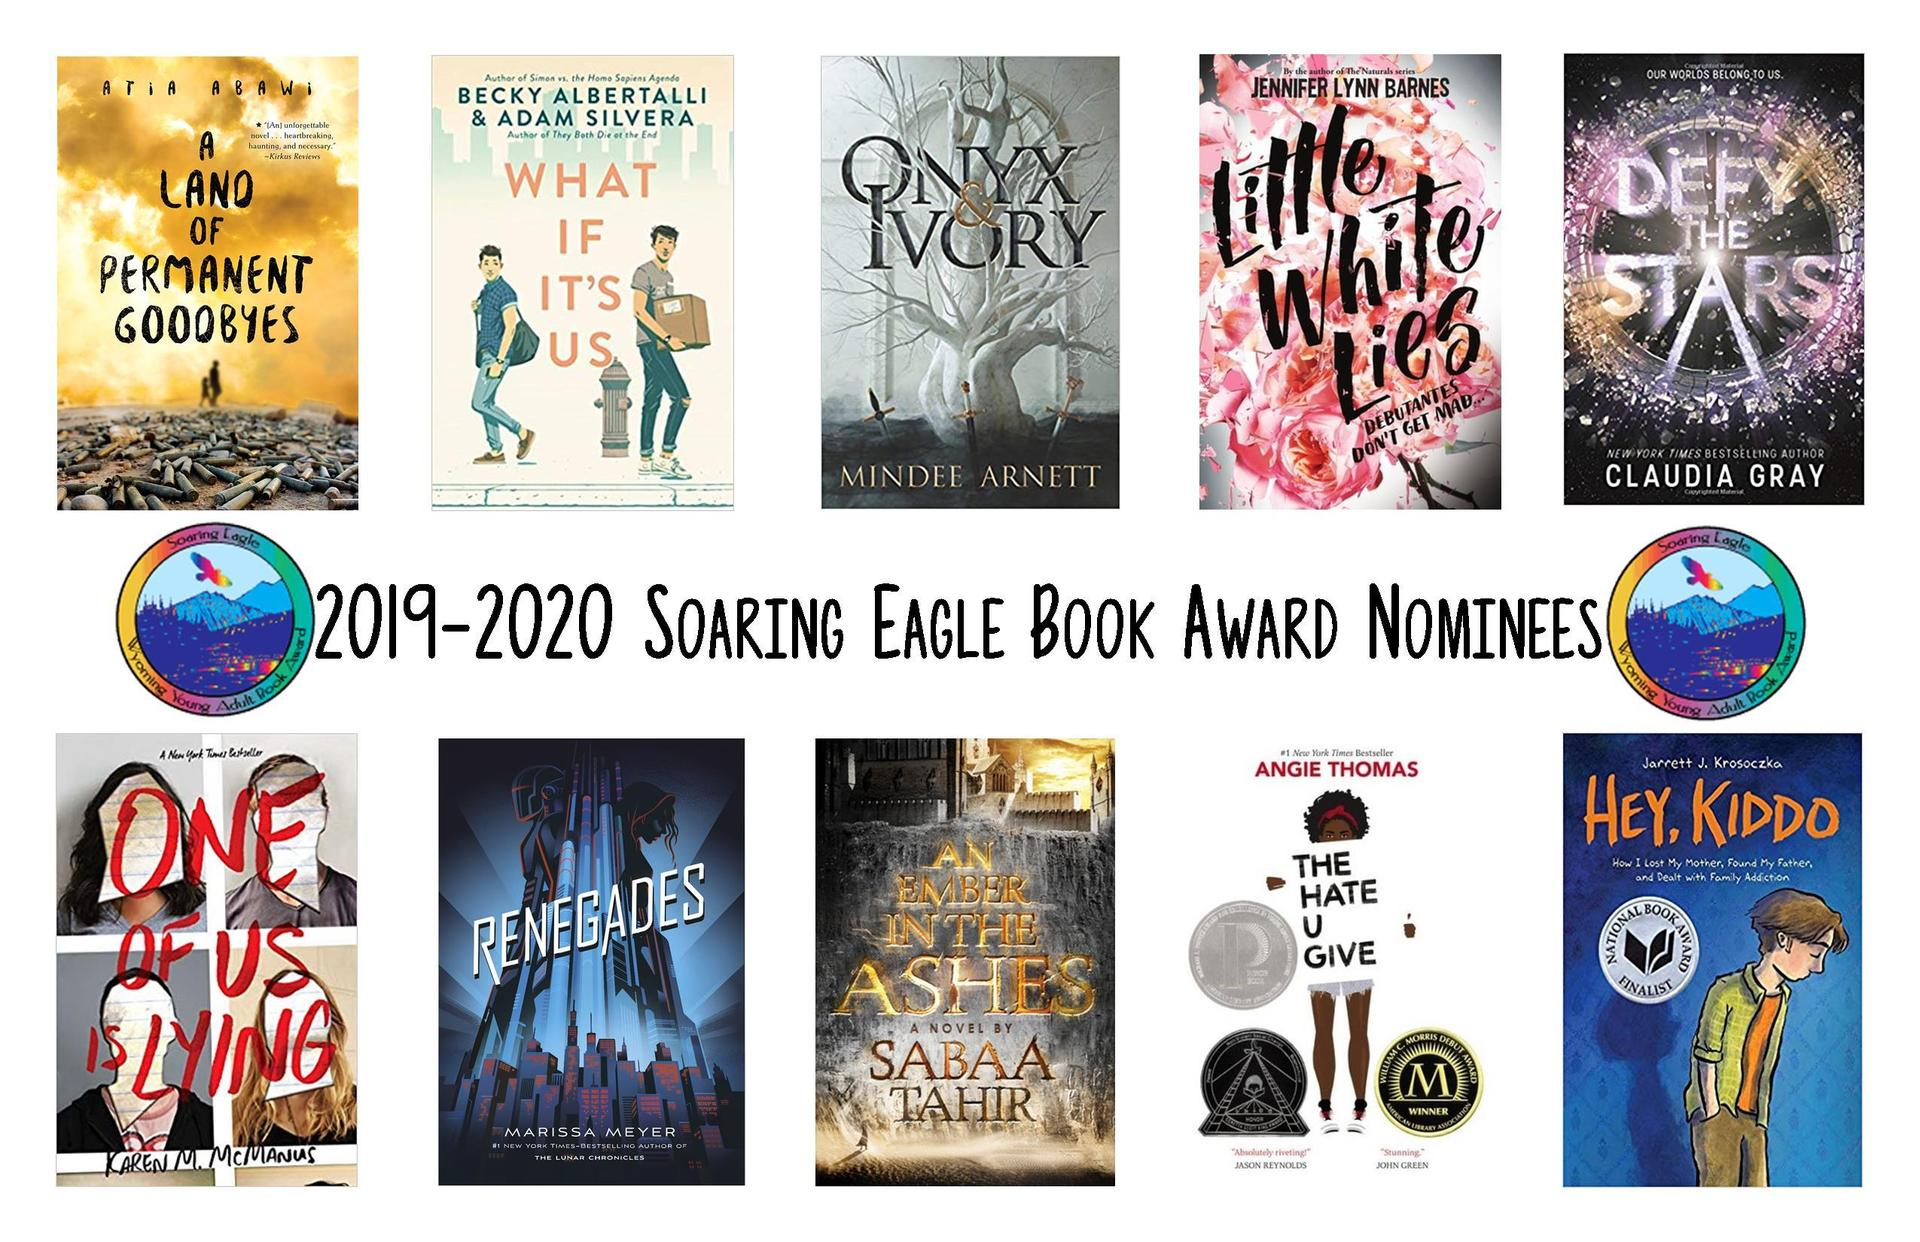 book covers for Soaring Eagle 2019-20